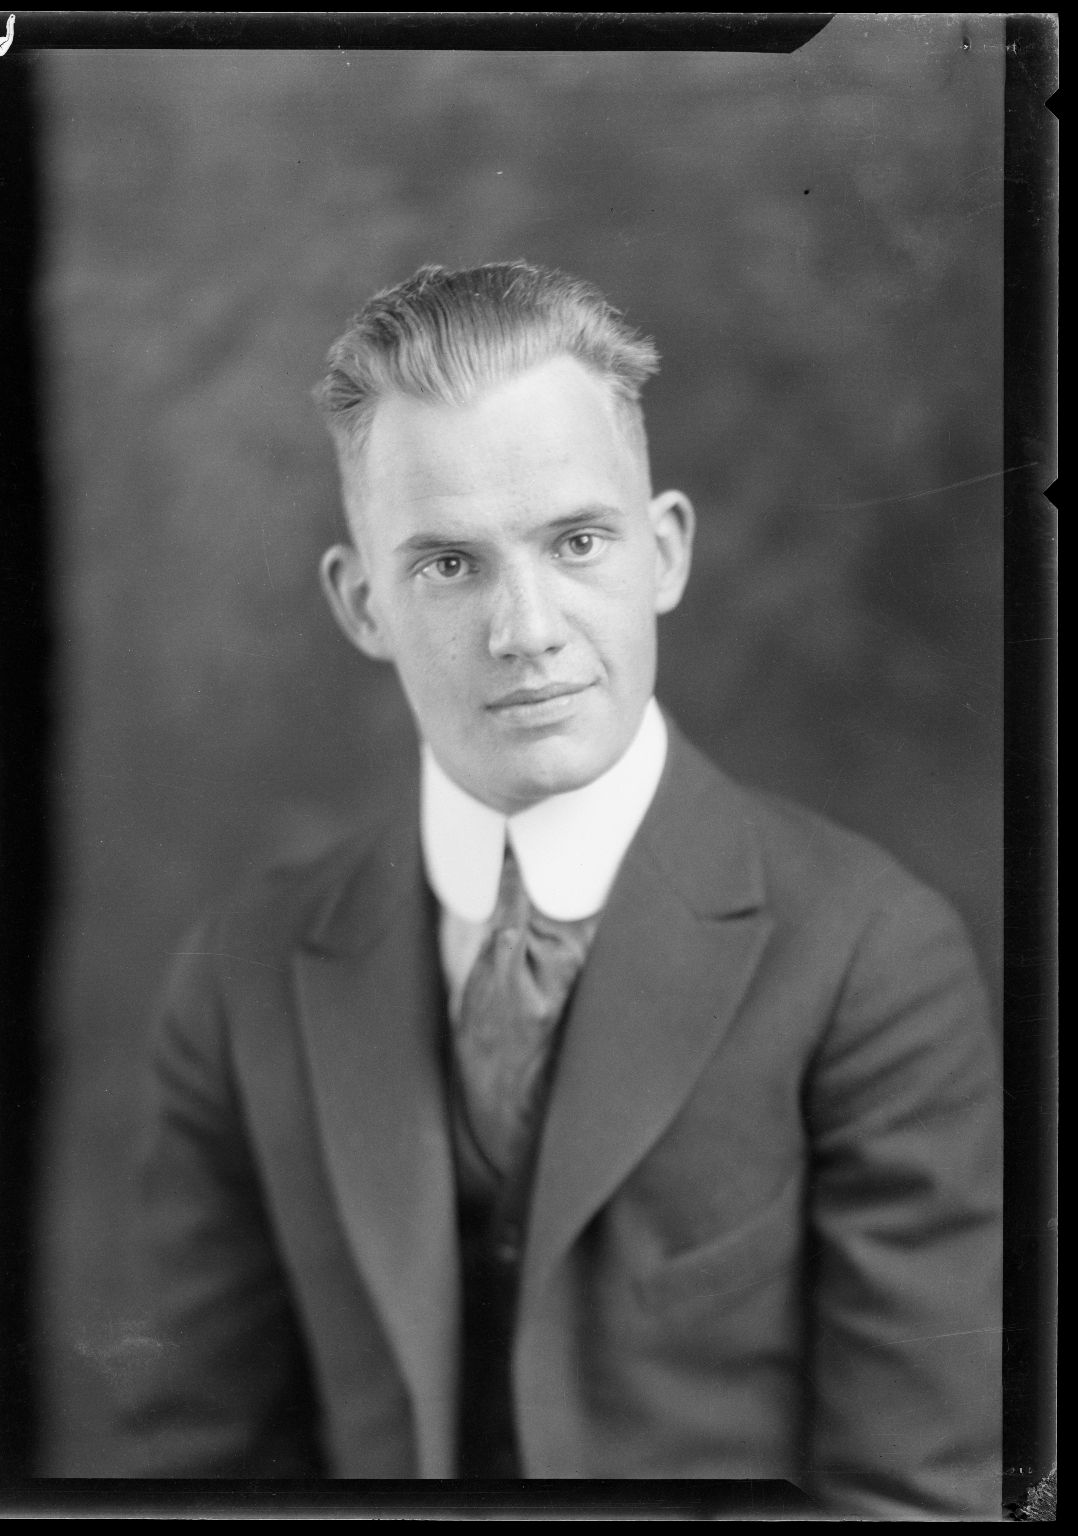 Portraits of R. E. Downing